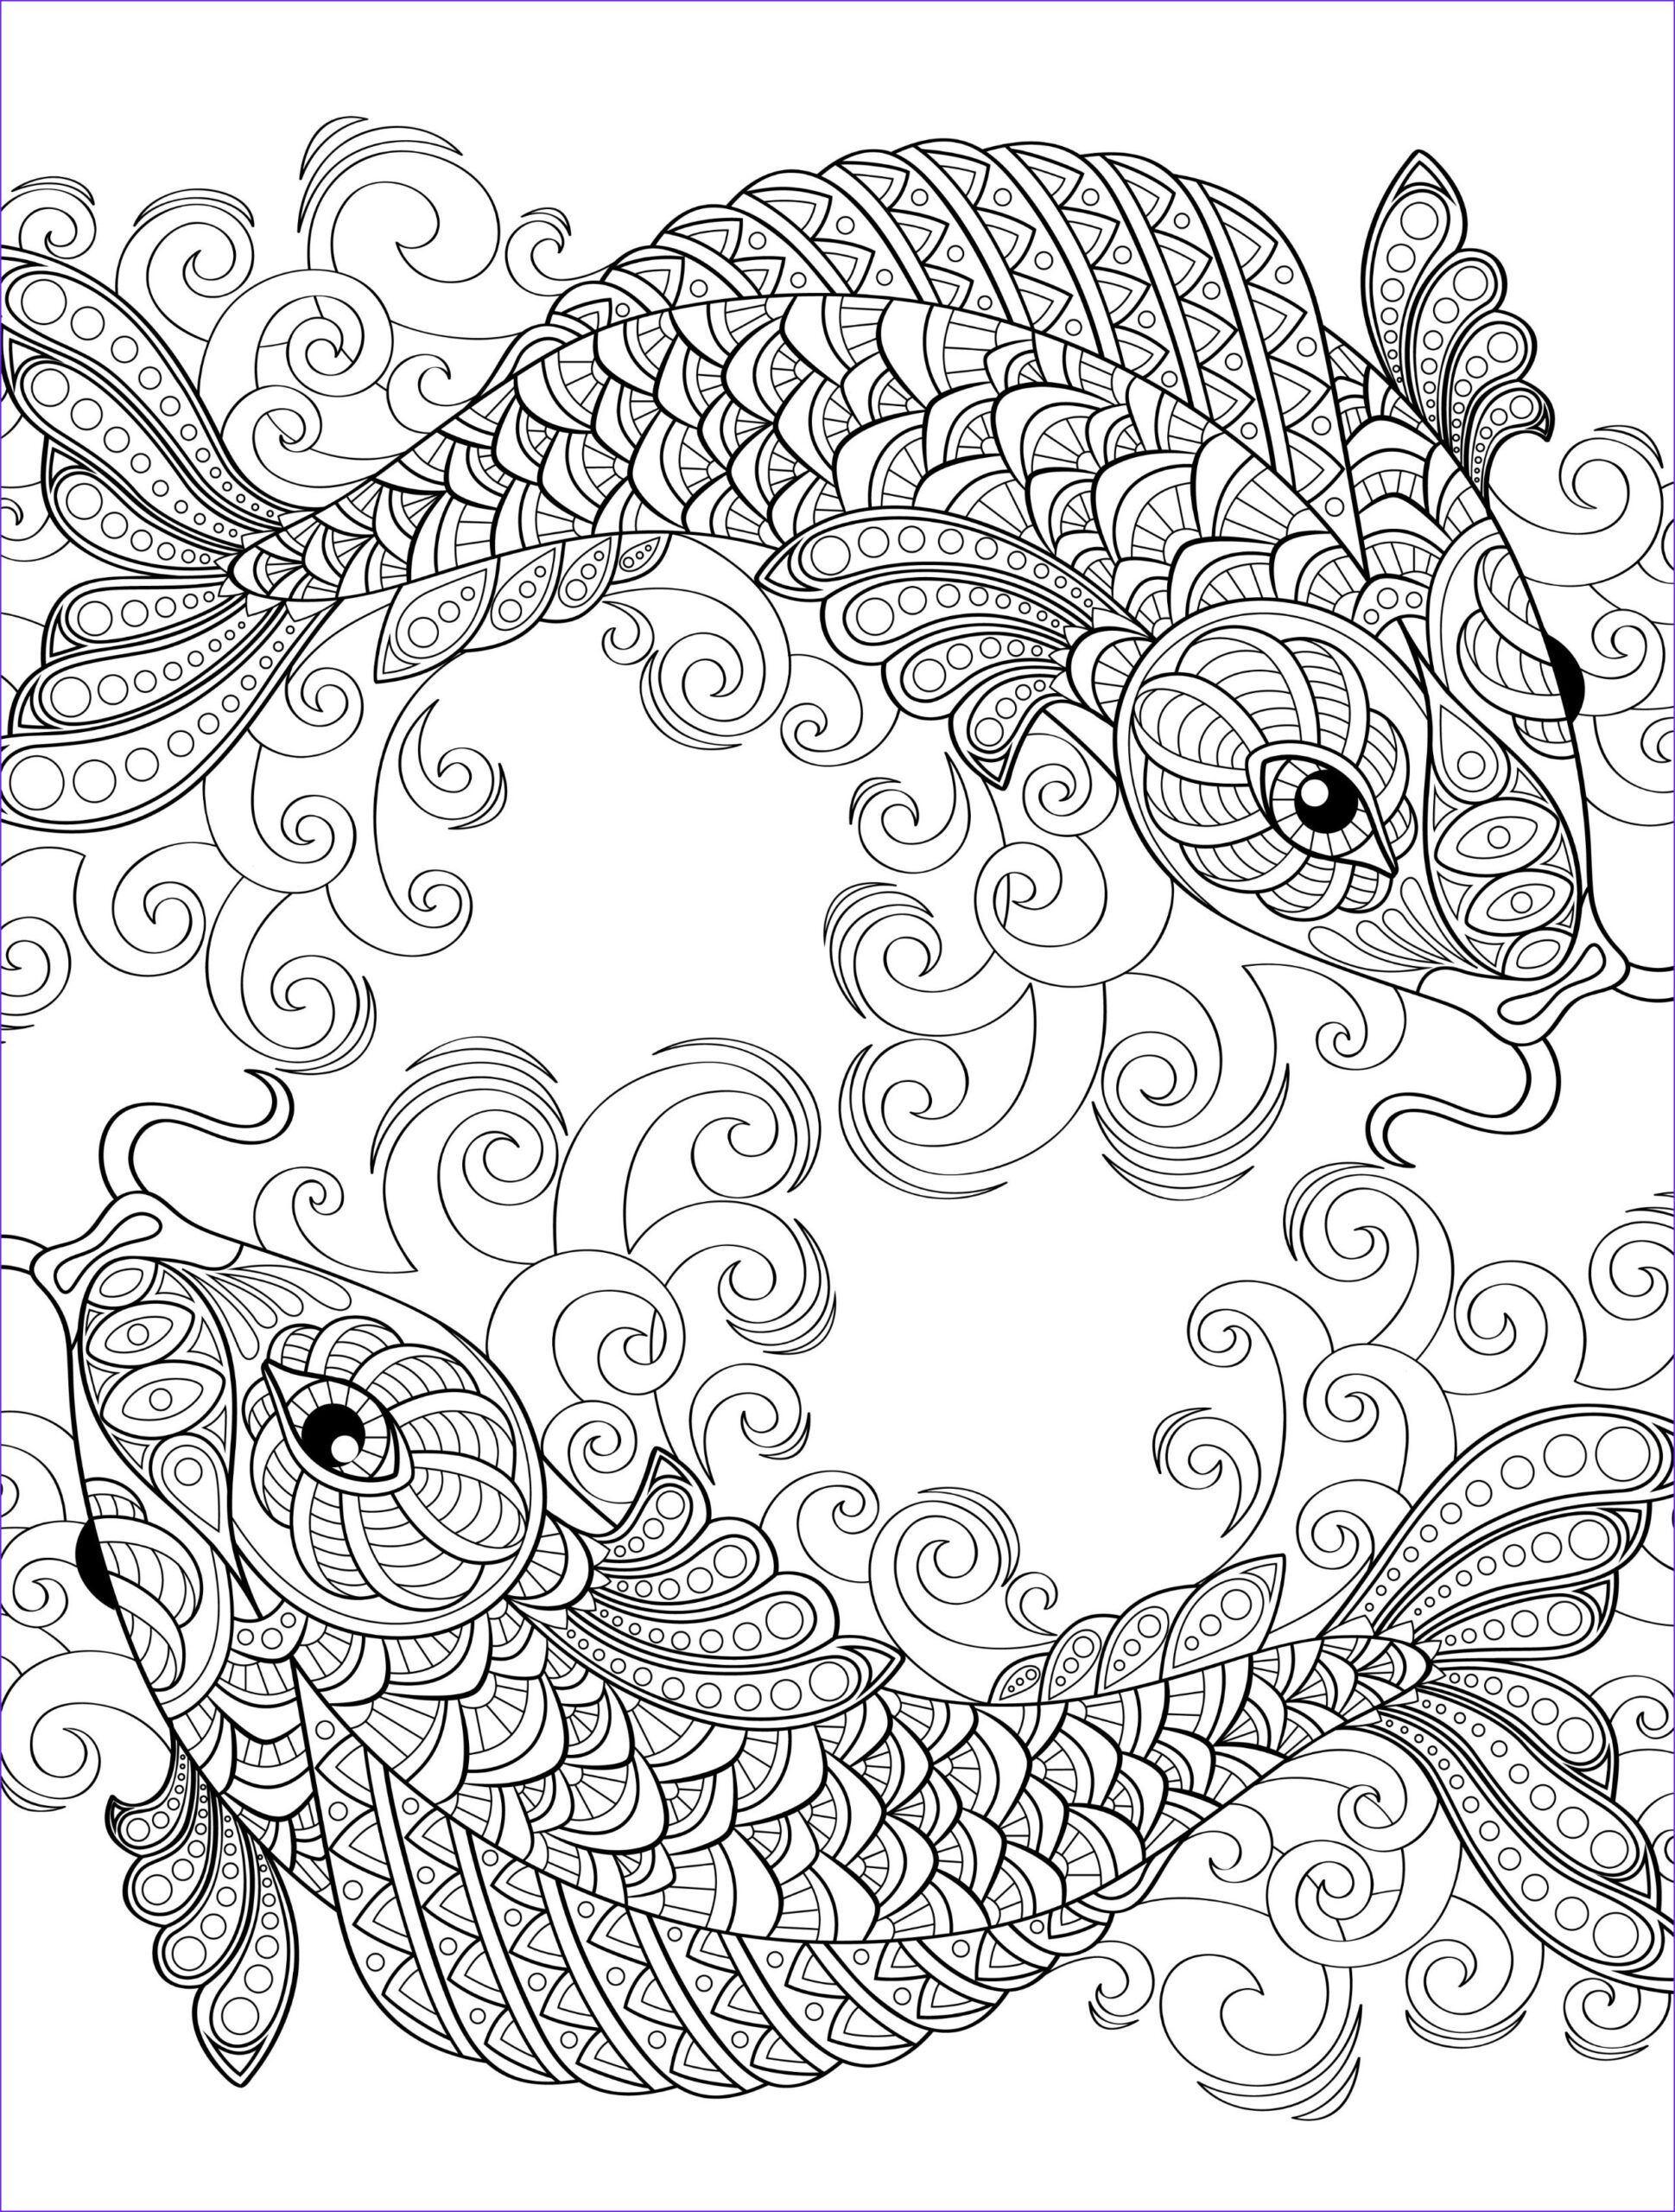 Free Coloring Pages for Adults Printable Luxury Image Pin On Coloring